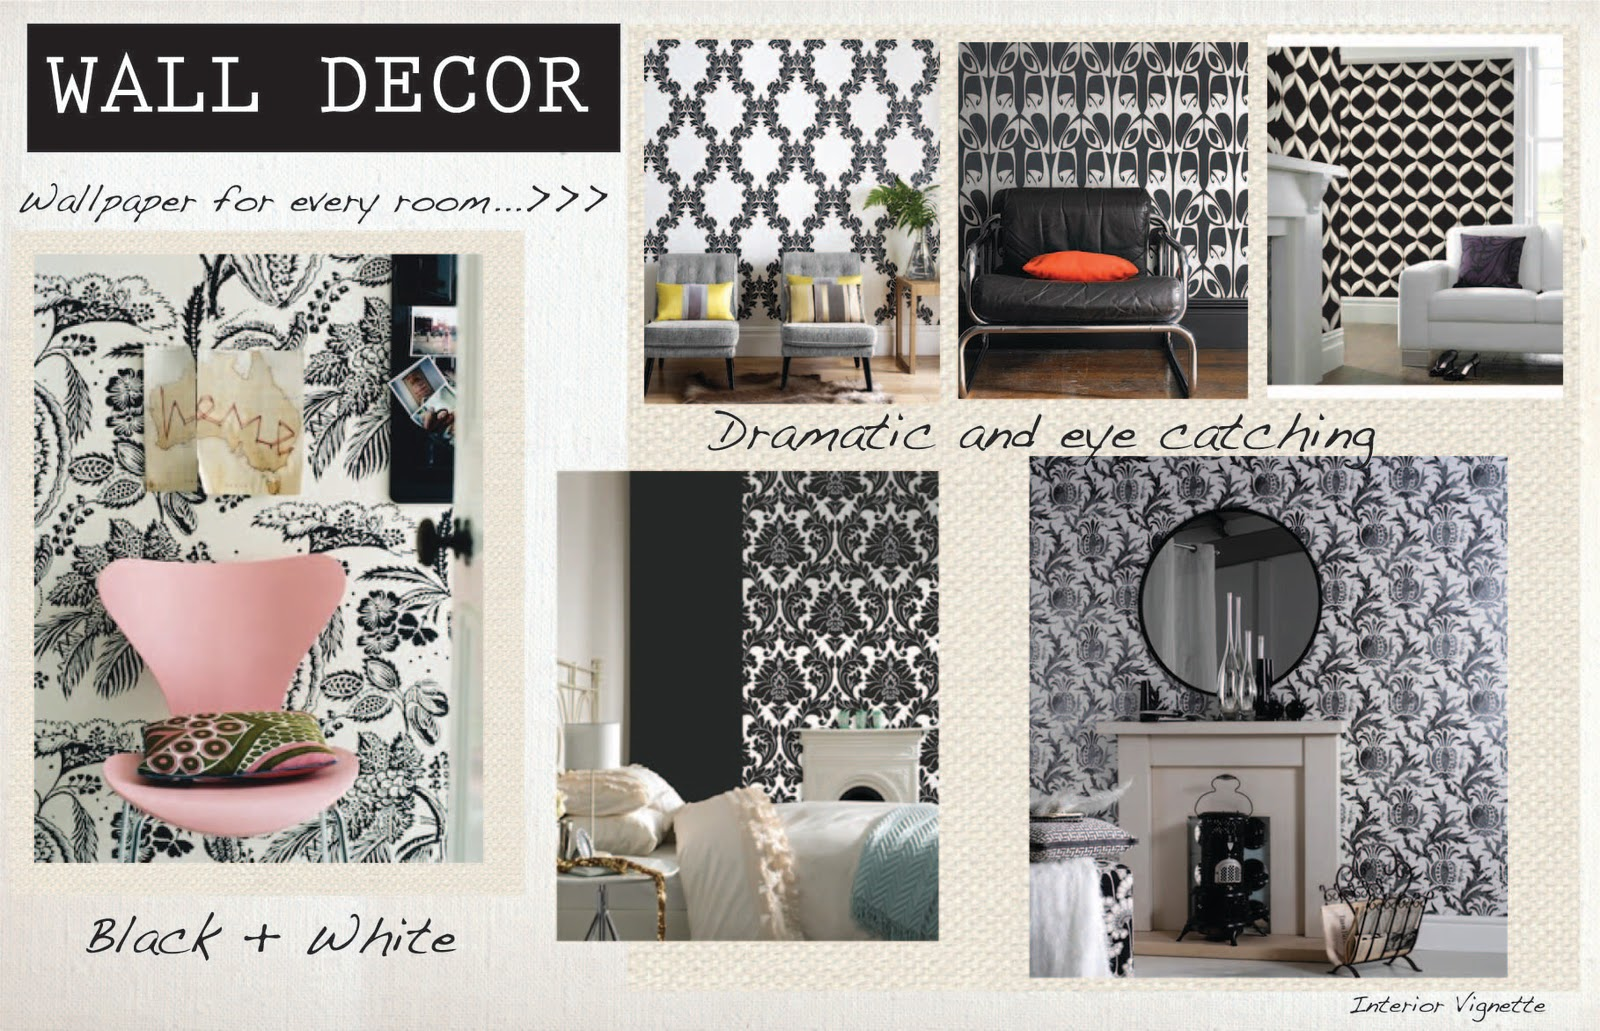 WALL DECOR ] BLACK WHITE WALLPAPER